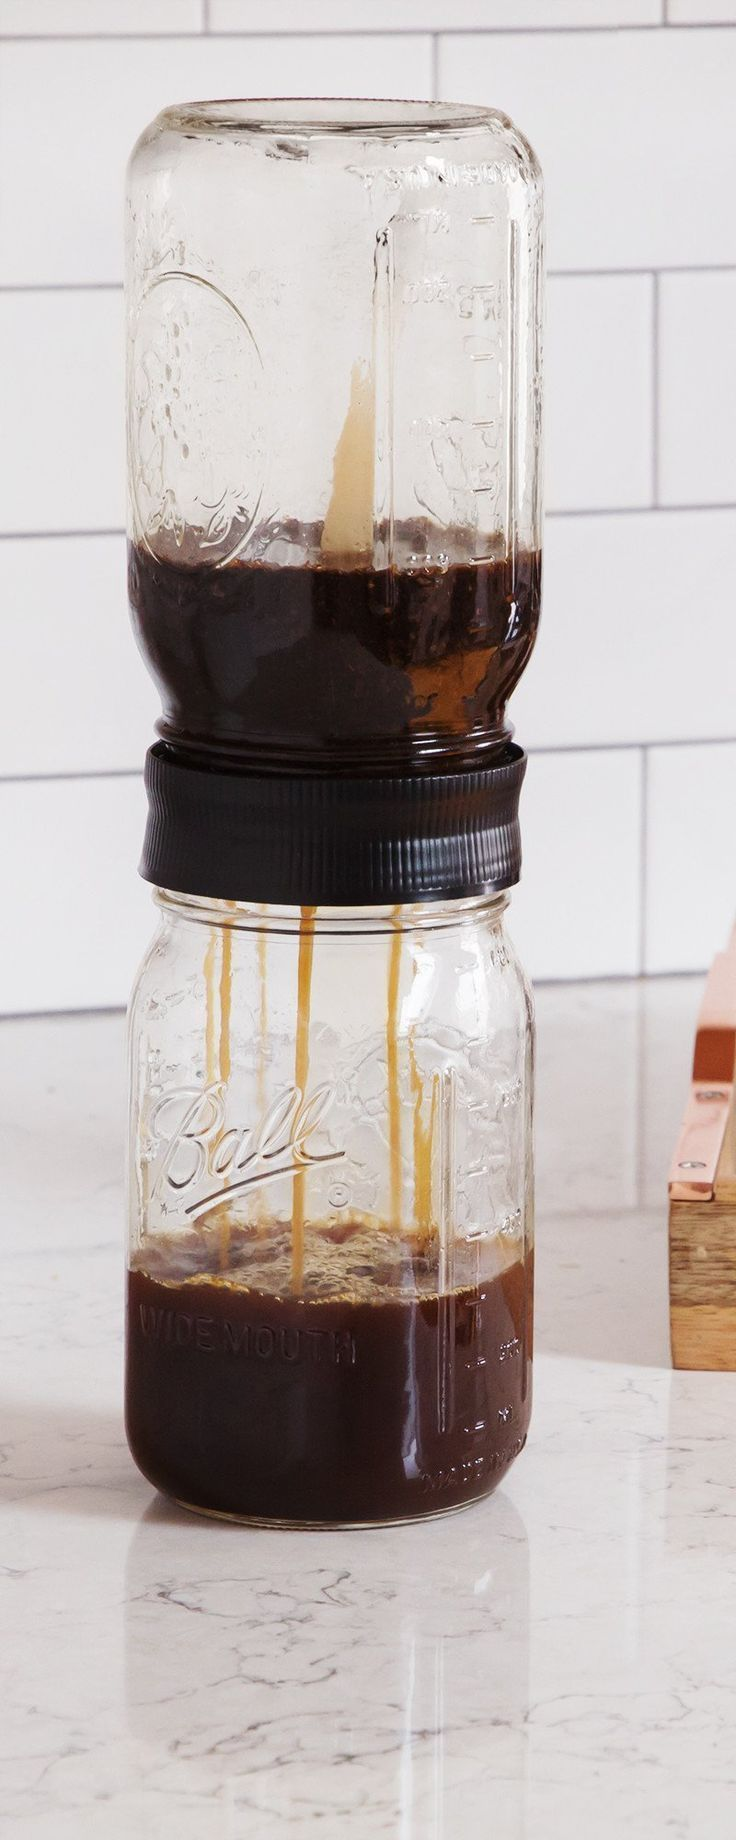 how to make vietnamese iced coffee without filter